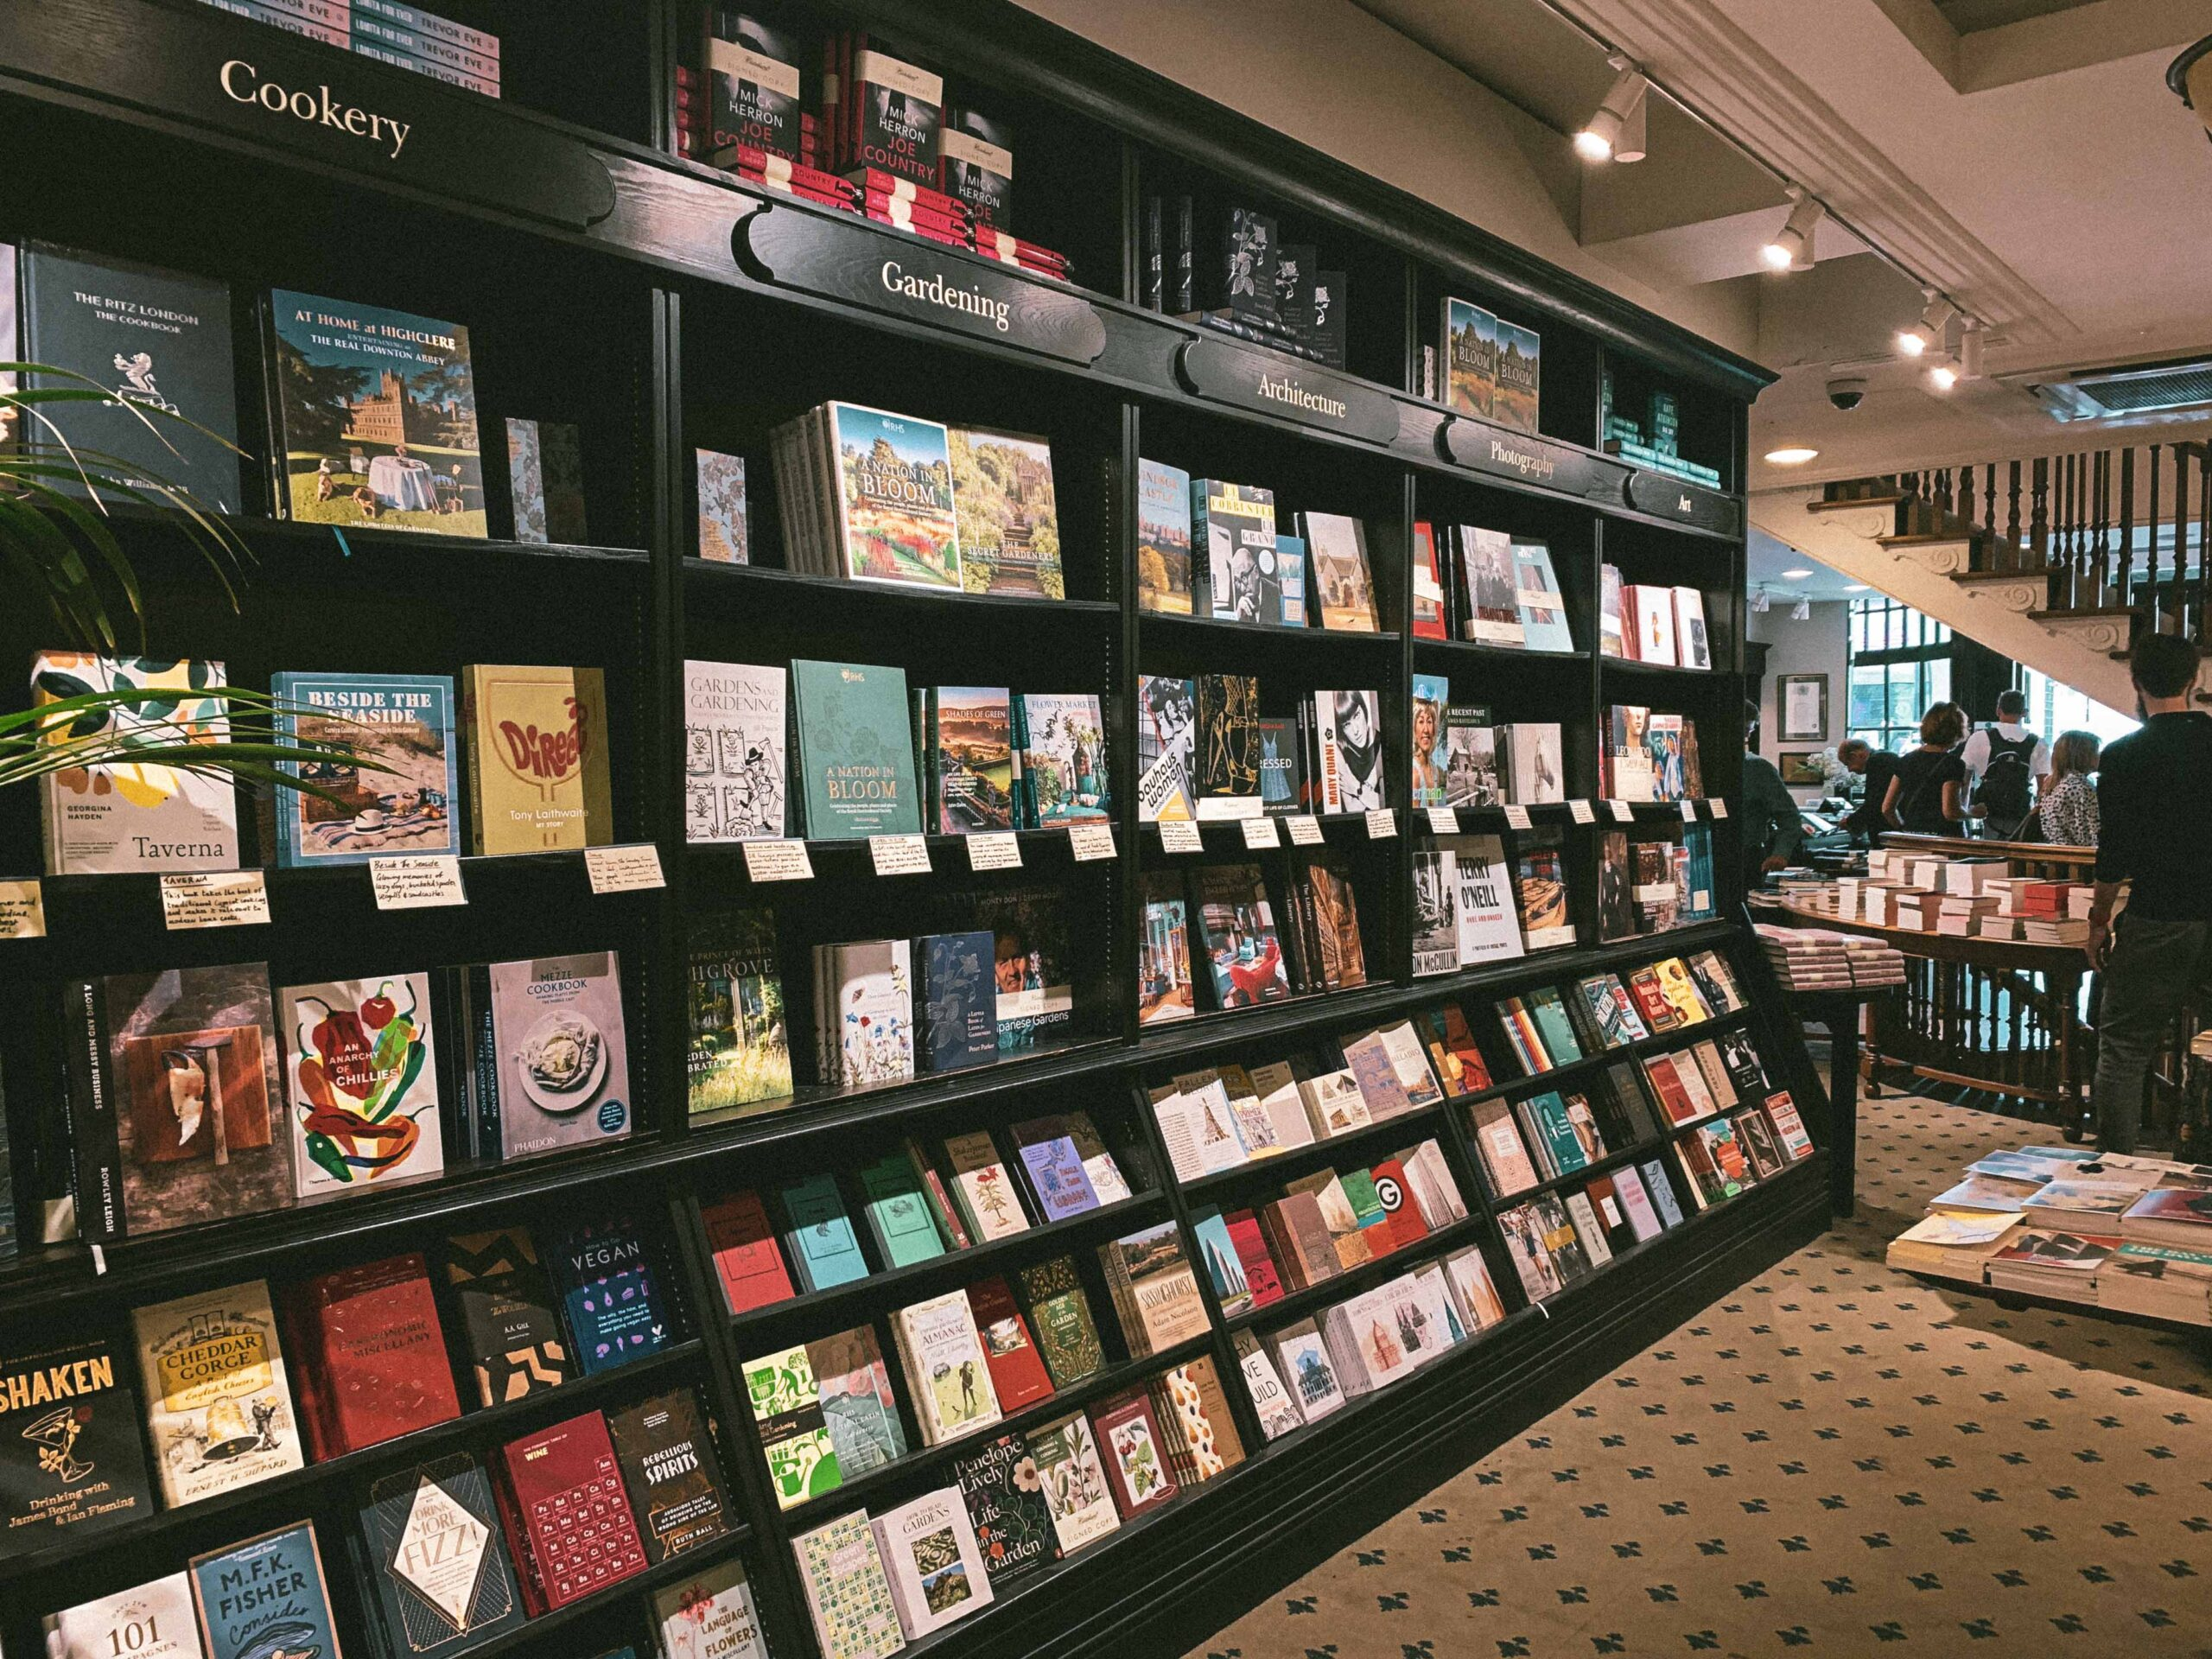 Hatchards: A Peek Inside the Oldest Bookshop in London and a bibliophile dream in the UK capital city of London, England